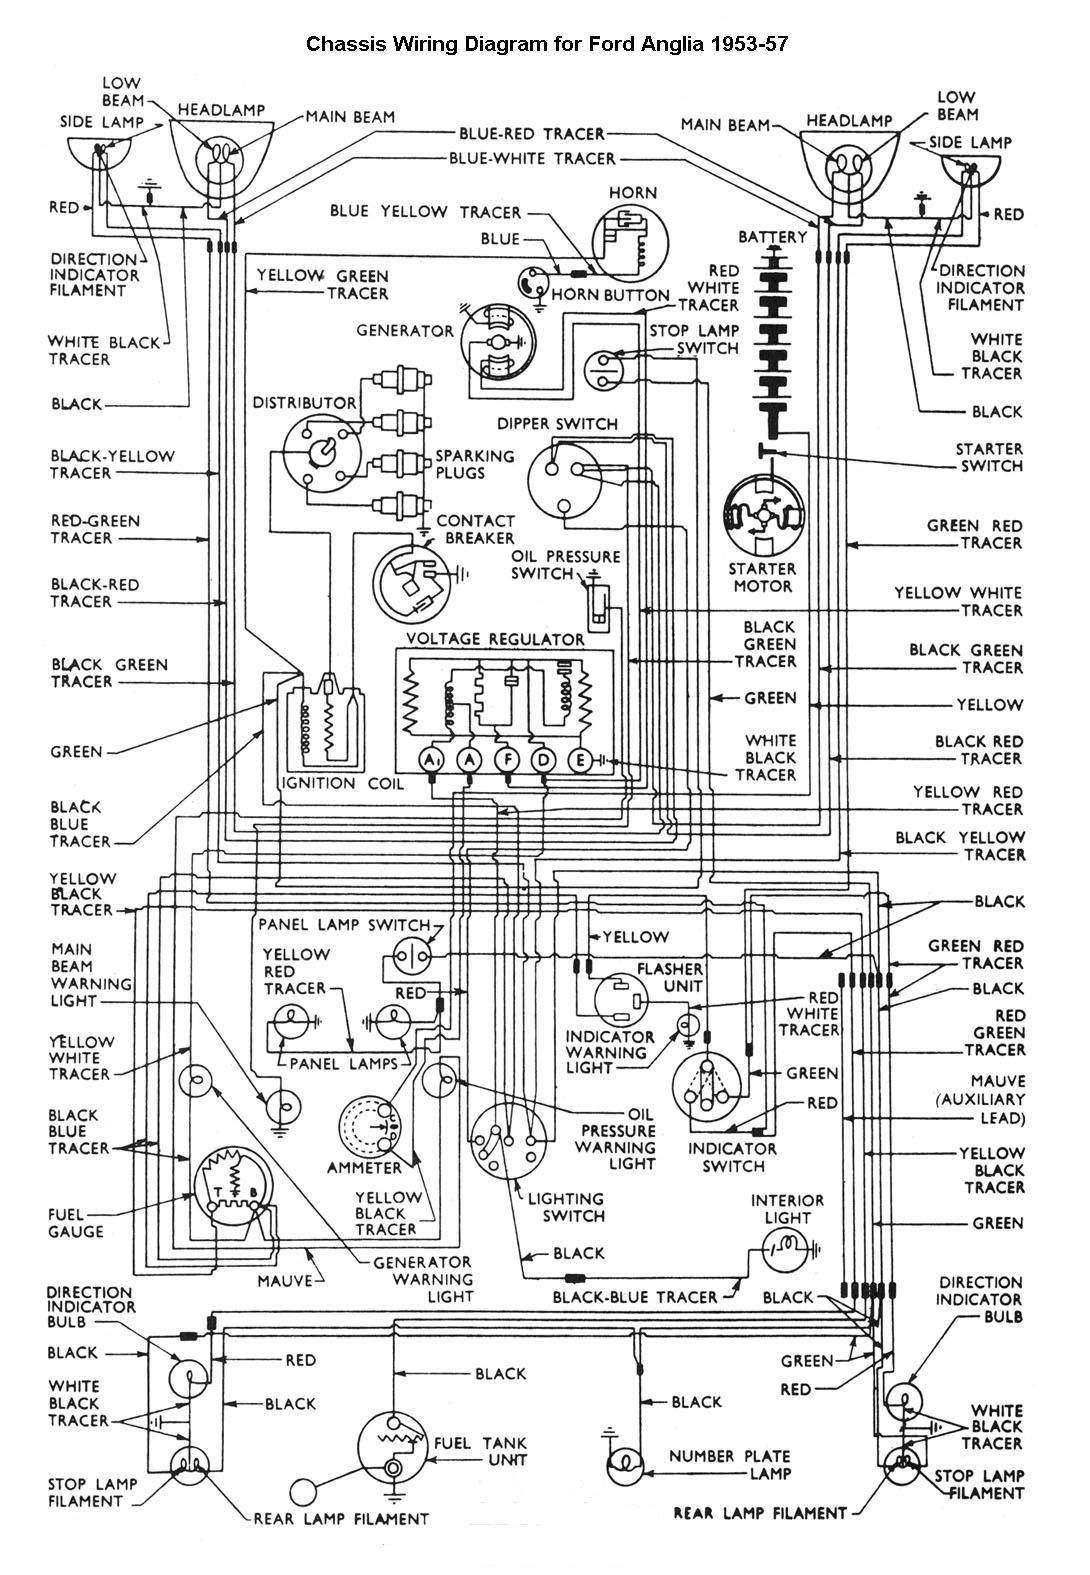 car wiring diagram mech truck repair cars motor car rover 75 electrical circuit diagrams auto repair manual forum [ 1090 x 1575 Pixel ]